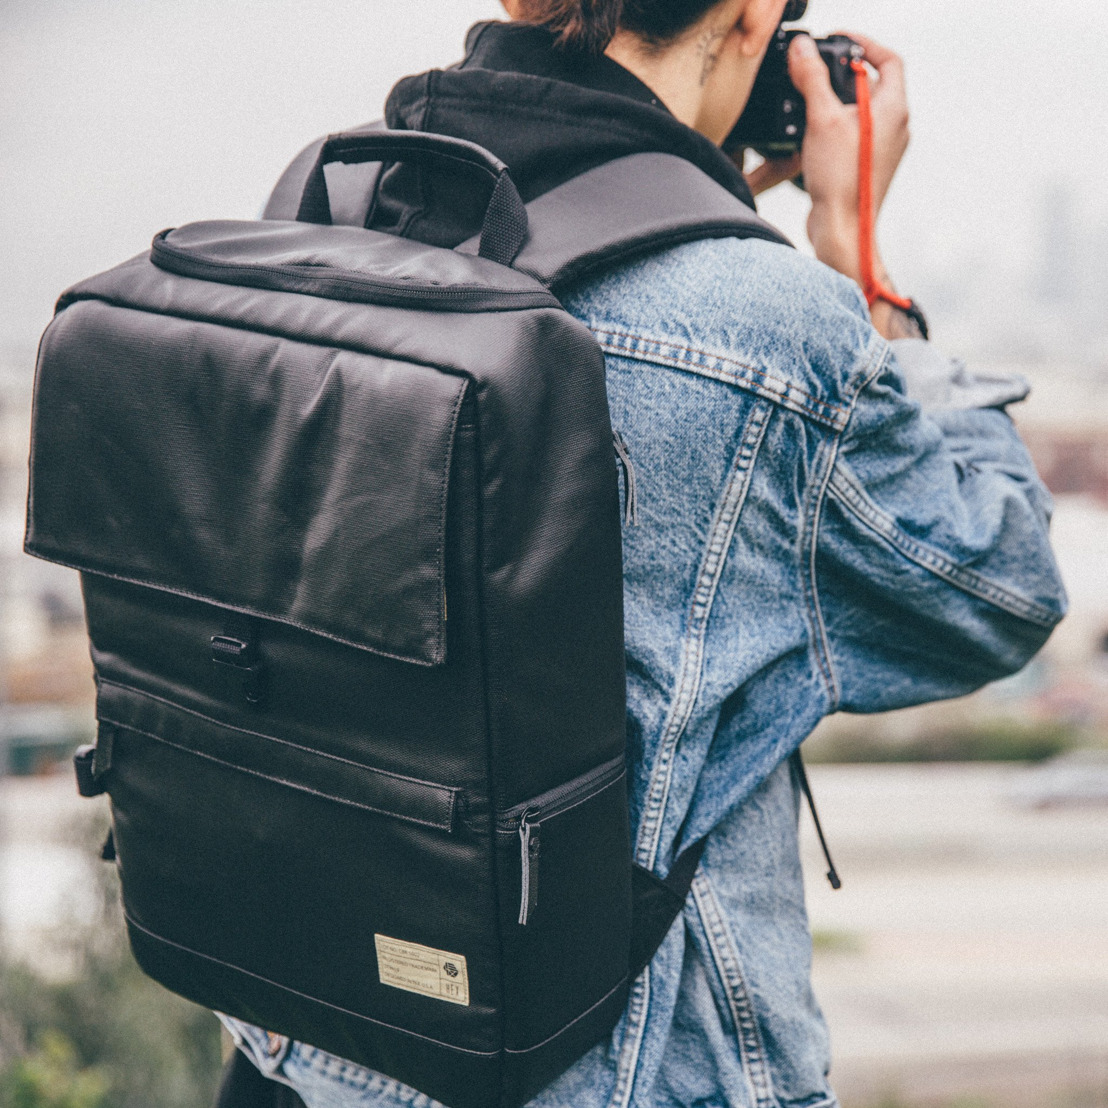 HEX Brand Releases DSLR and Mirrorless Camera Bag Collections In New Raven And Geo Camo Colorways